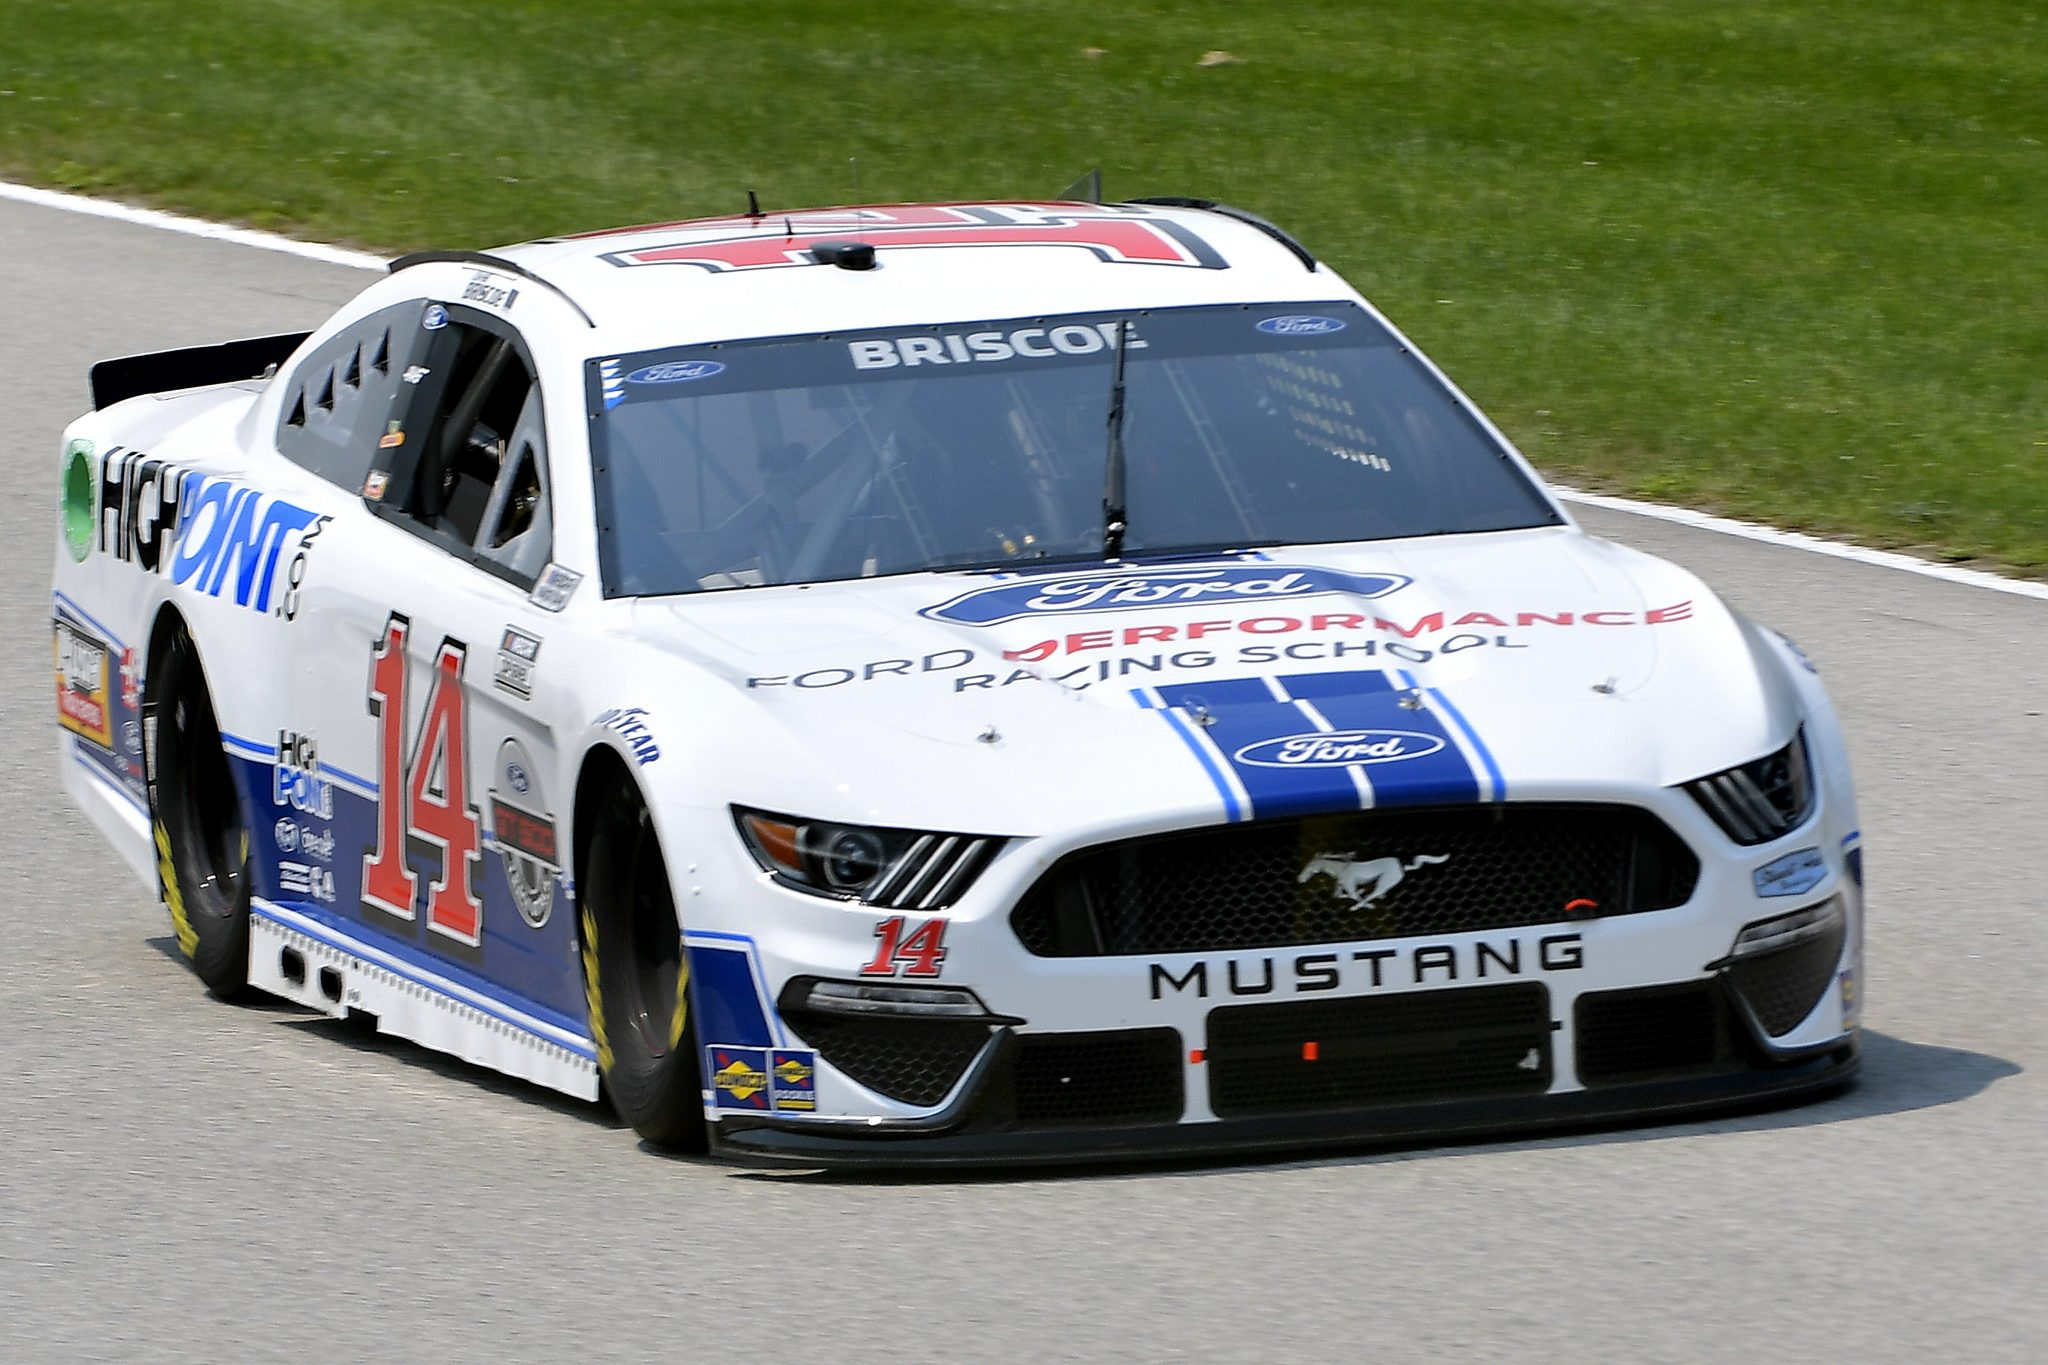 ELKHART LAKE, WISCONSIN - JULY 03: Chase Briscoe, driver of the #14 FordPerformanceRacingSchool/HighPoint Ford, drives during practice for the NASCAR Cup Series Jockey Made in America 250 Presented by Kwik Trip at Road America on July 03, 2021 in Elkhart Lake, Wisconsin. (Photo by Logan Riely/Getty Images)   Getty Images